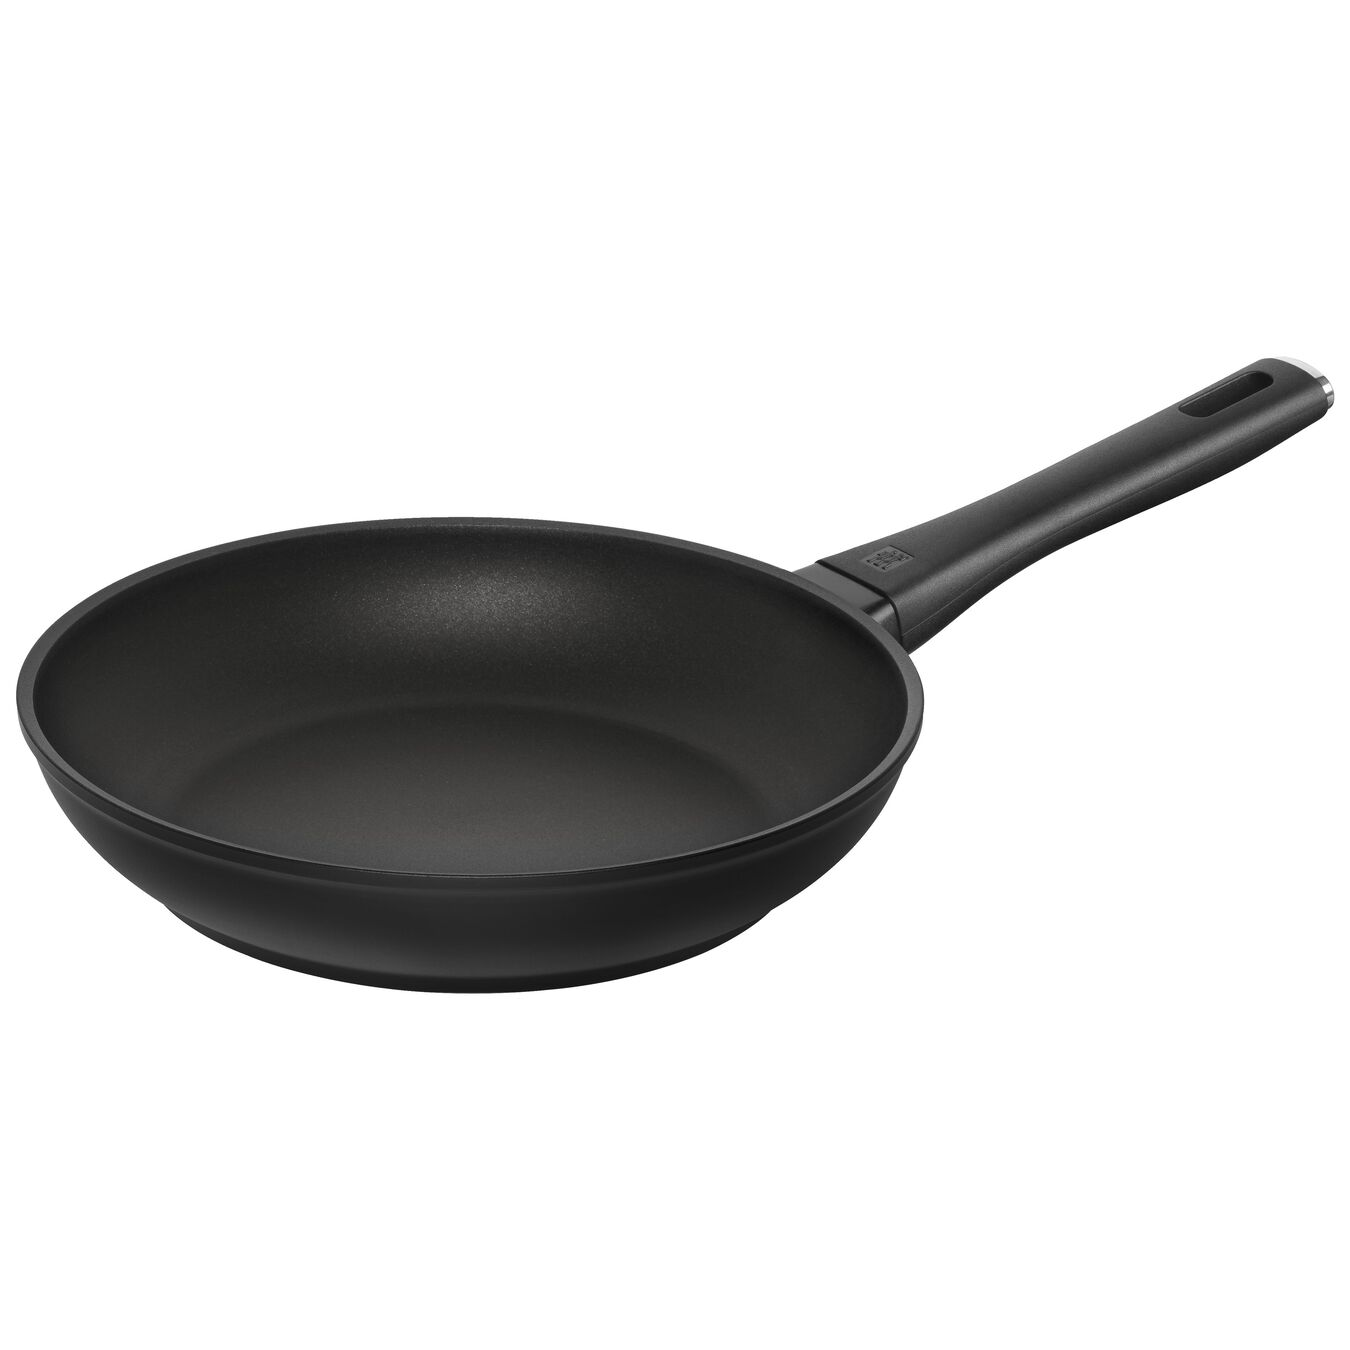 9.5-inch, Non-stick, Frying pan,,large 1